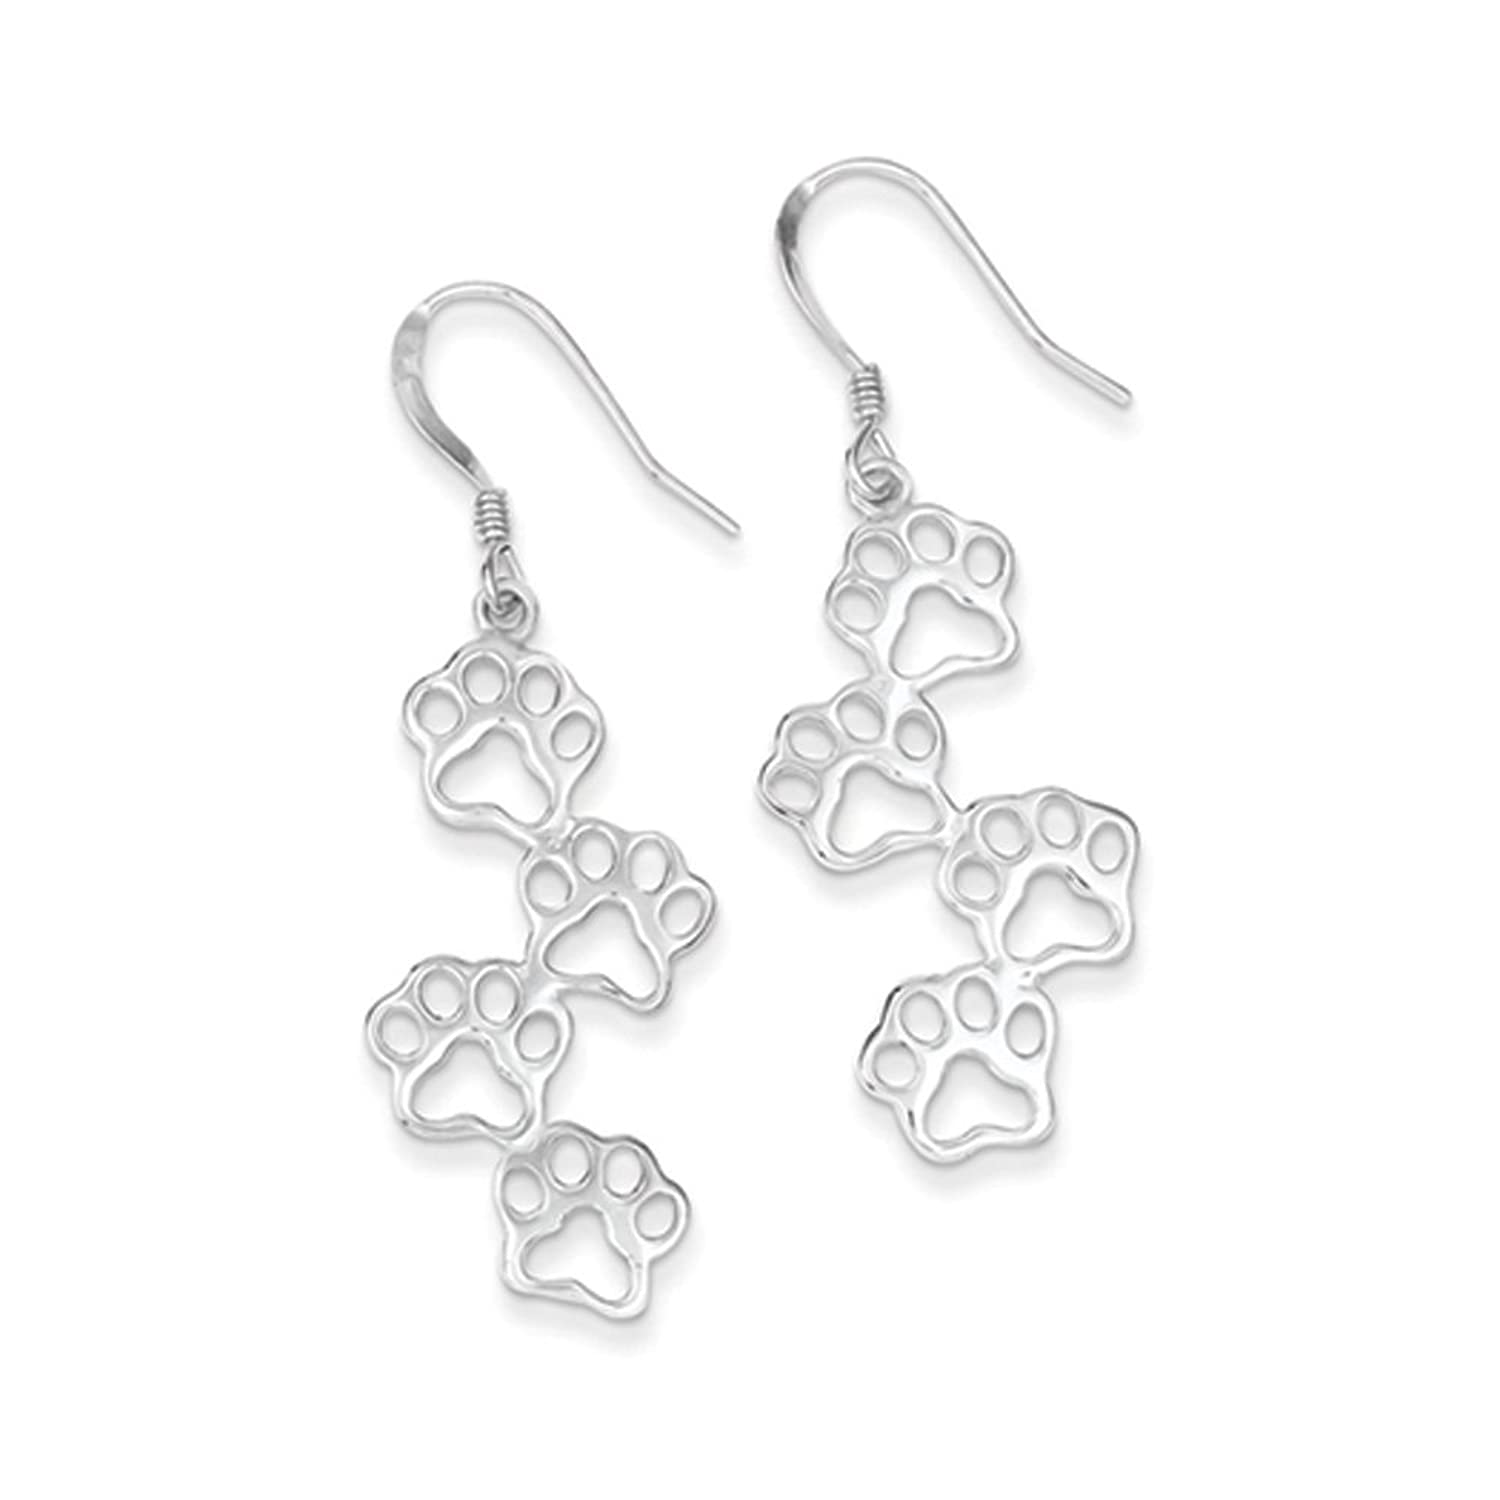 Polished Paw Prints Dangle Earrings in Sterling Silver